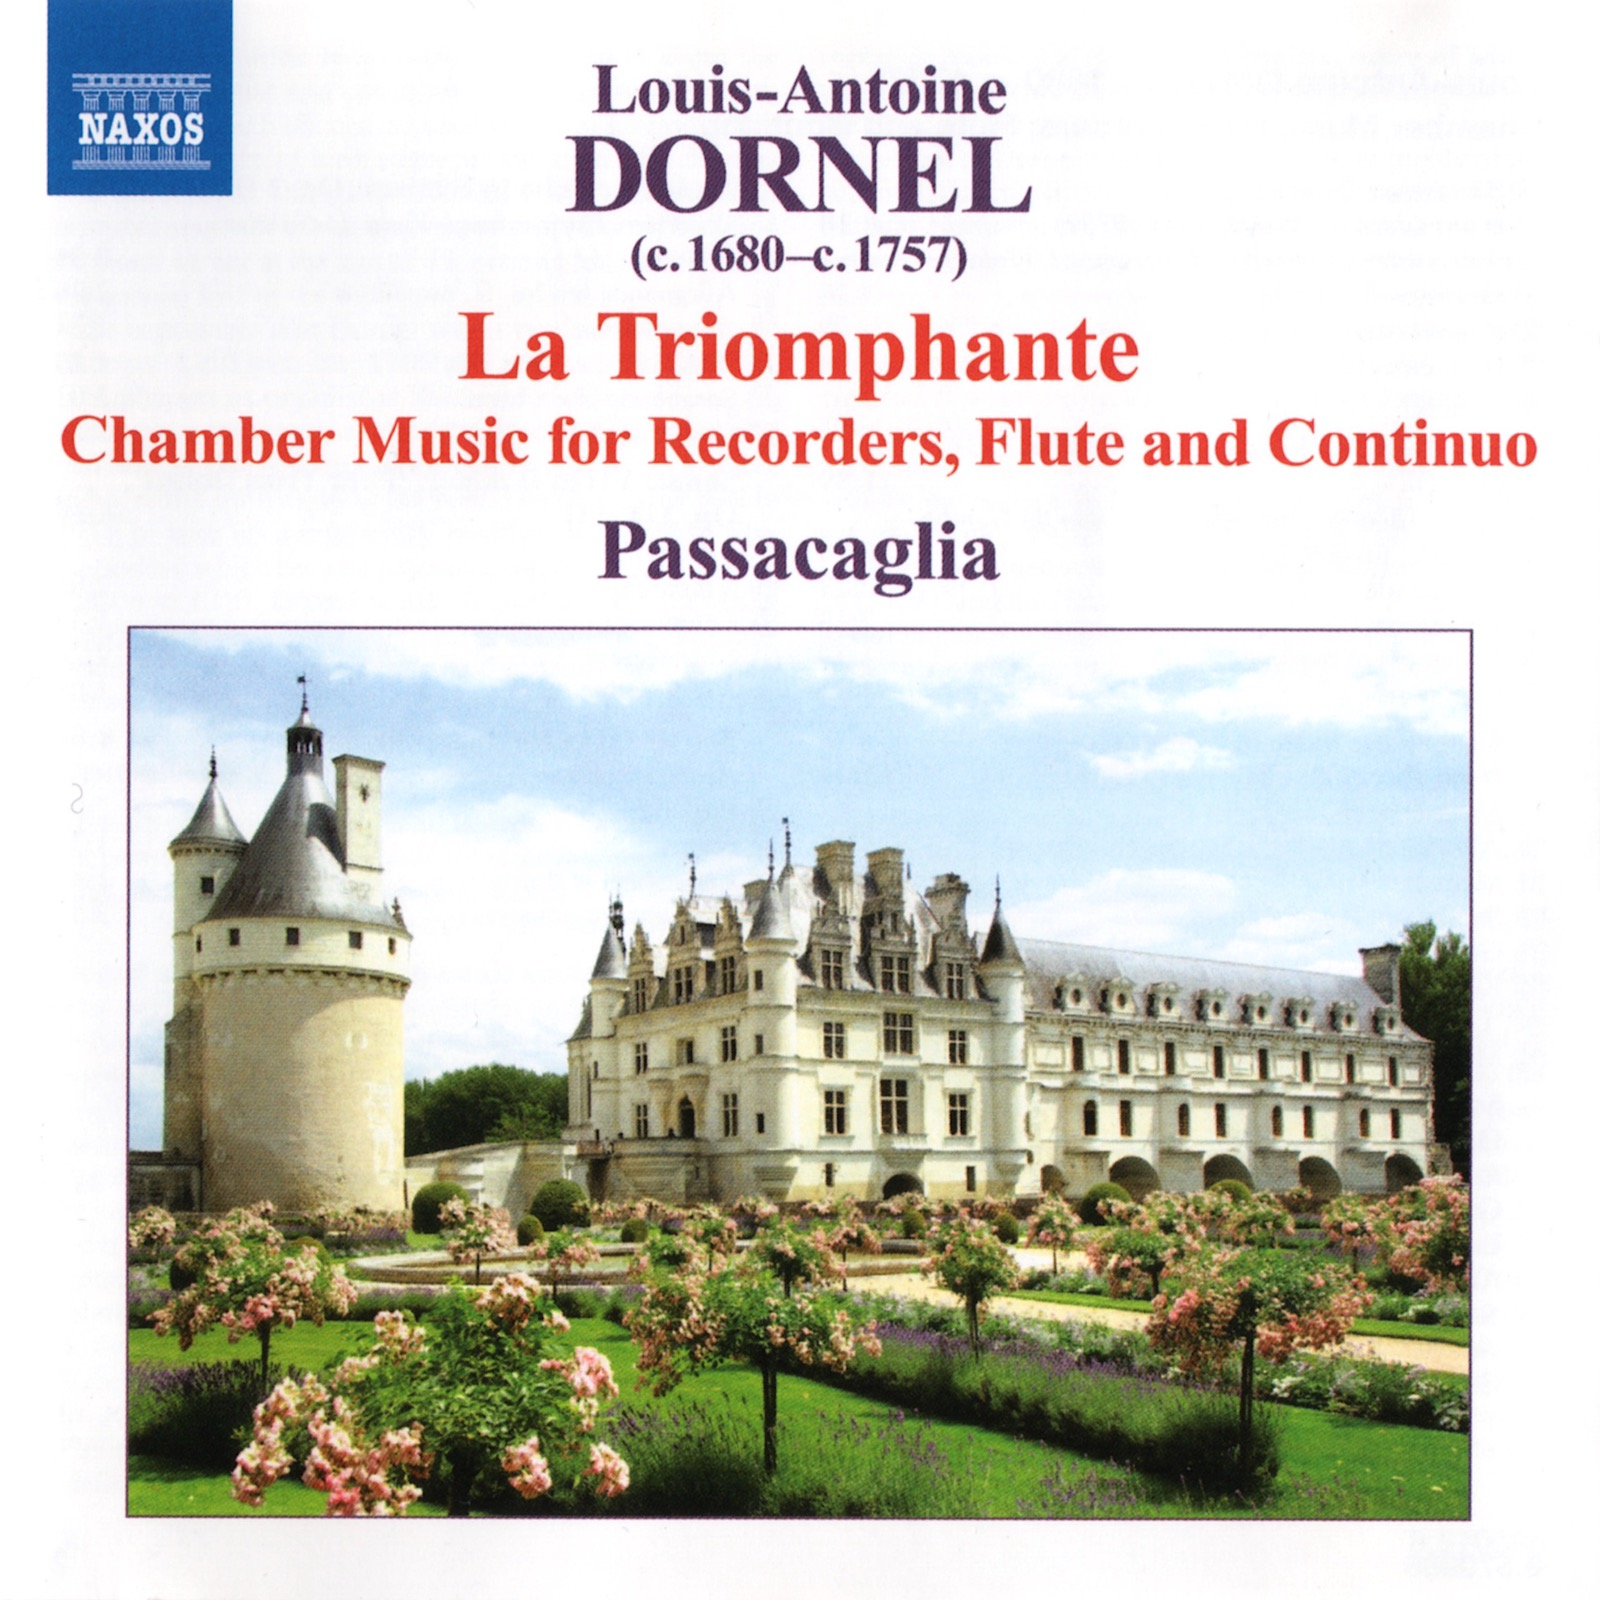 CD cover image of Dornel La Triomphante